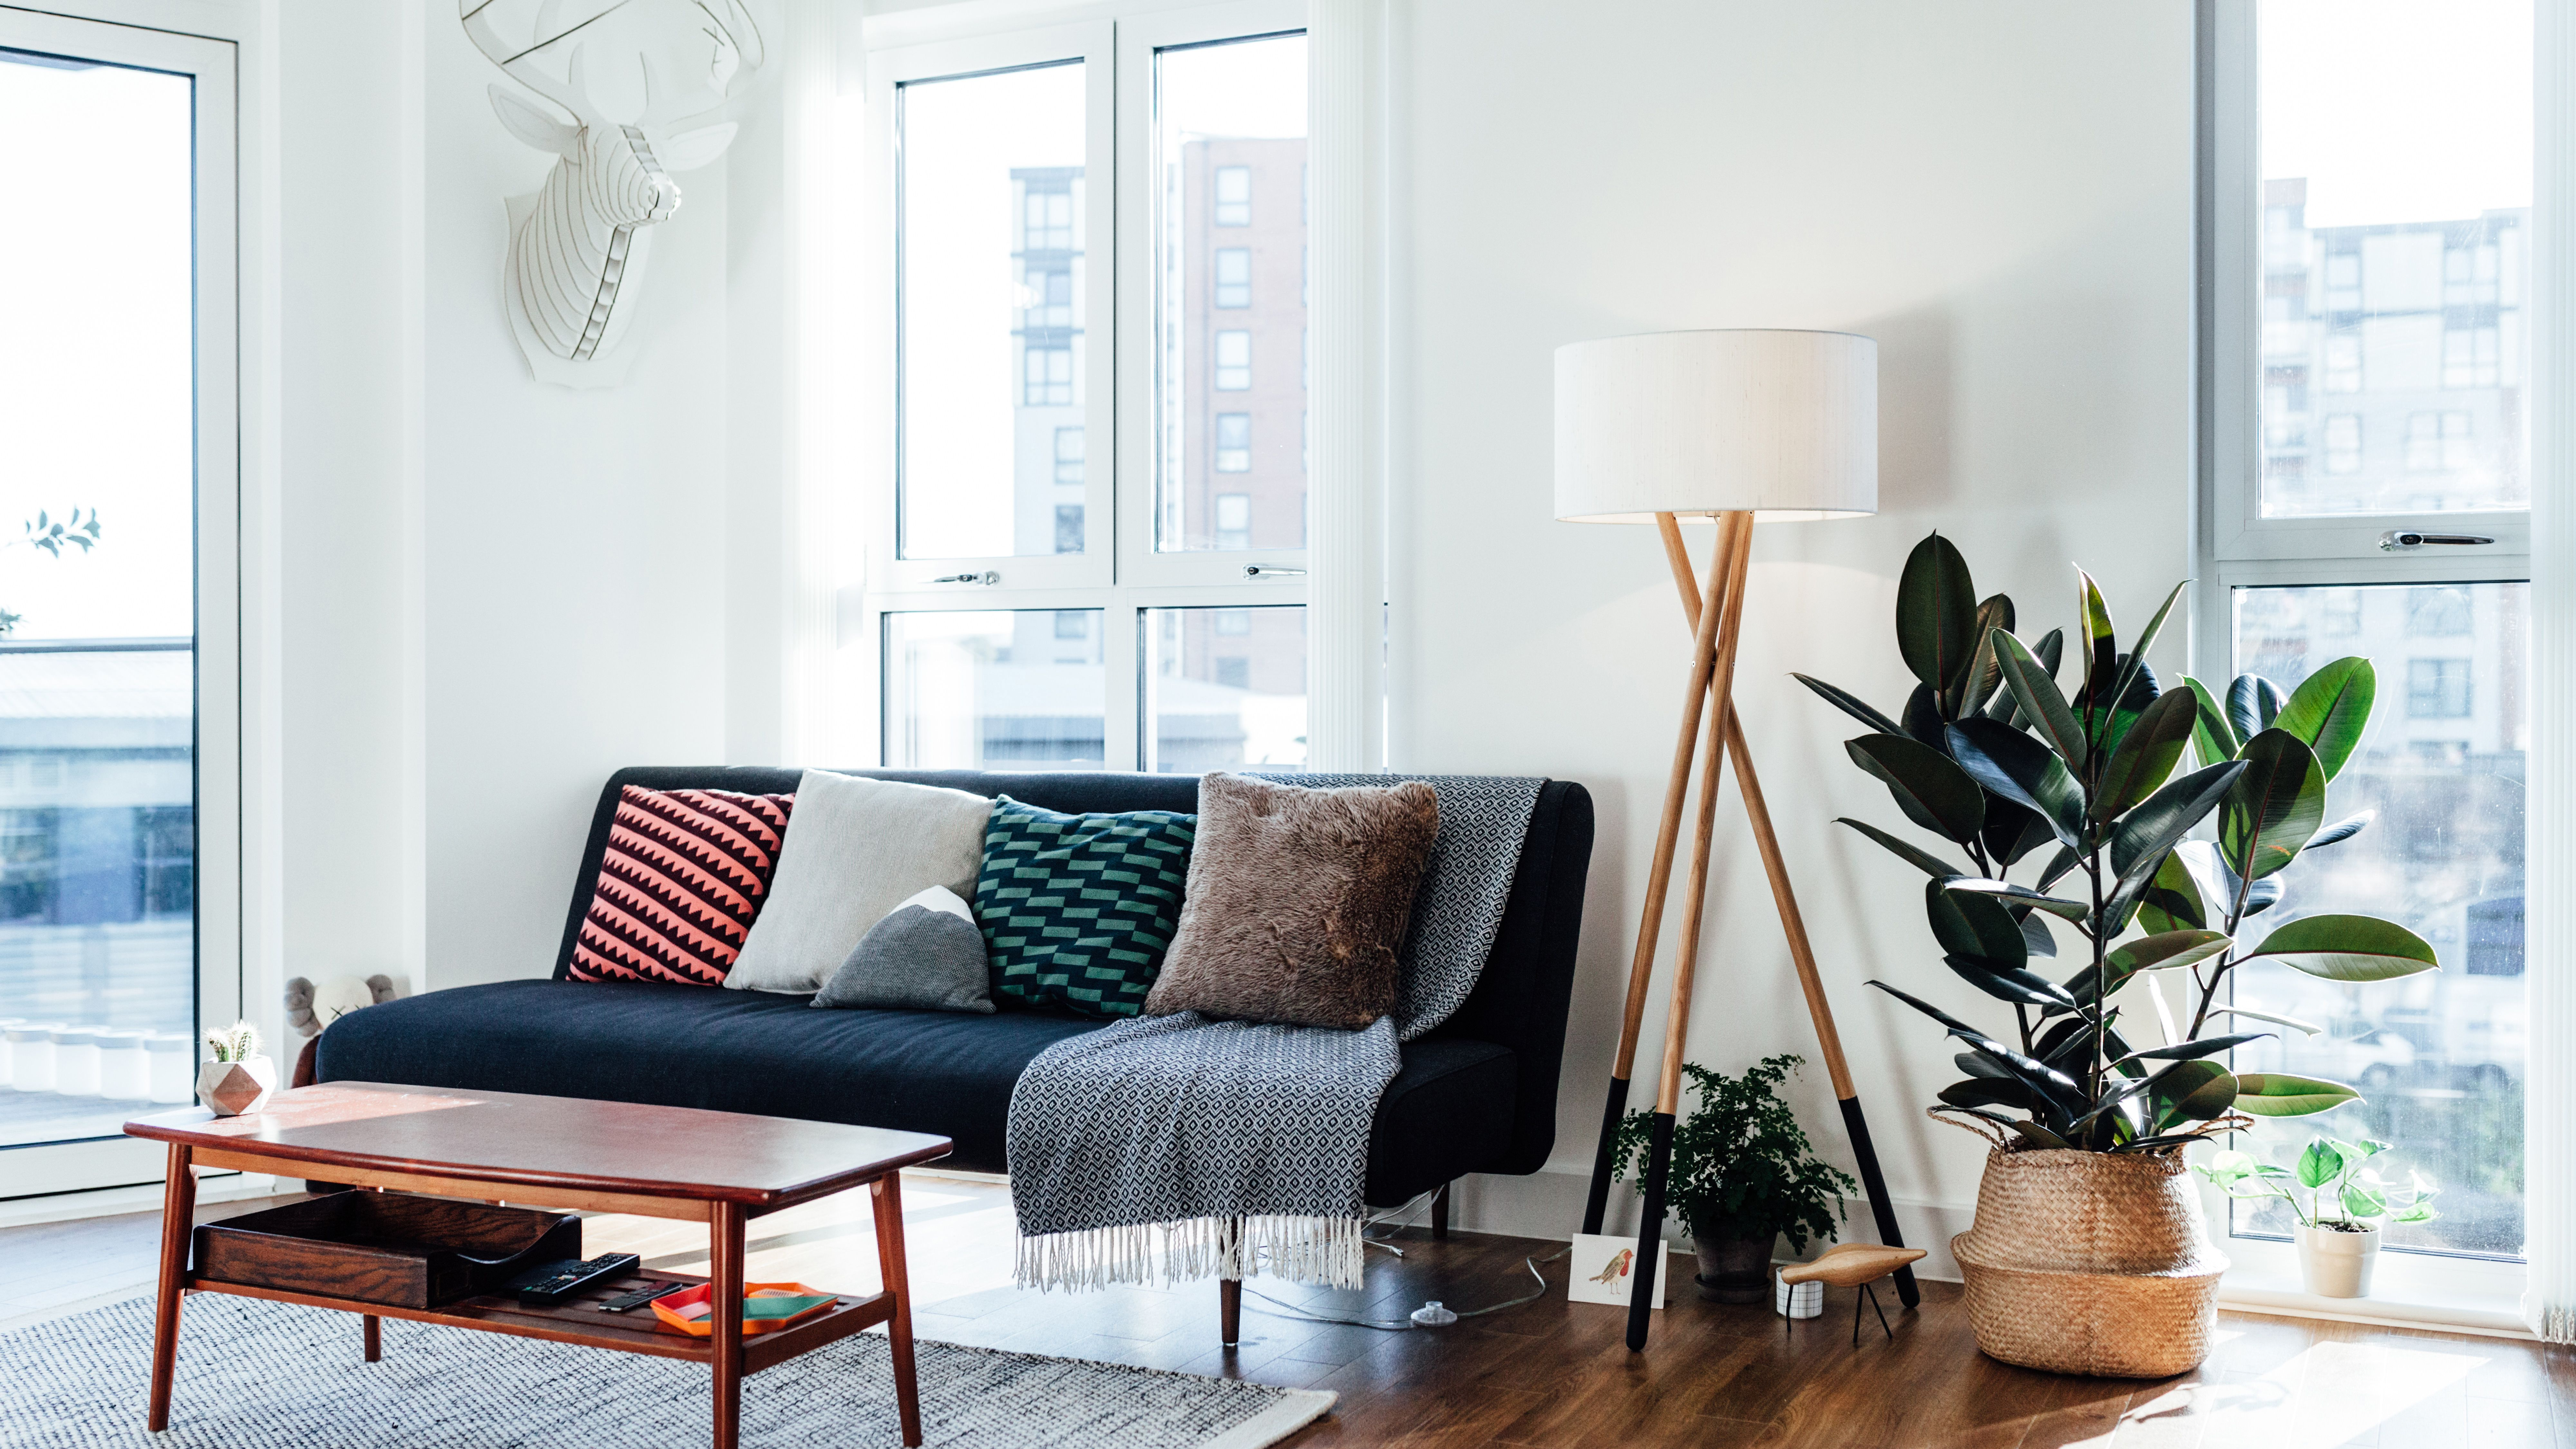 h and m home decor.htm how to create good feng shui in your home  how to create good feng shui in your home